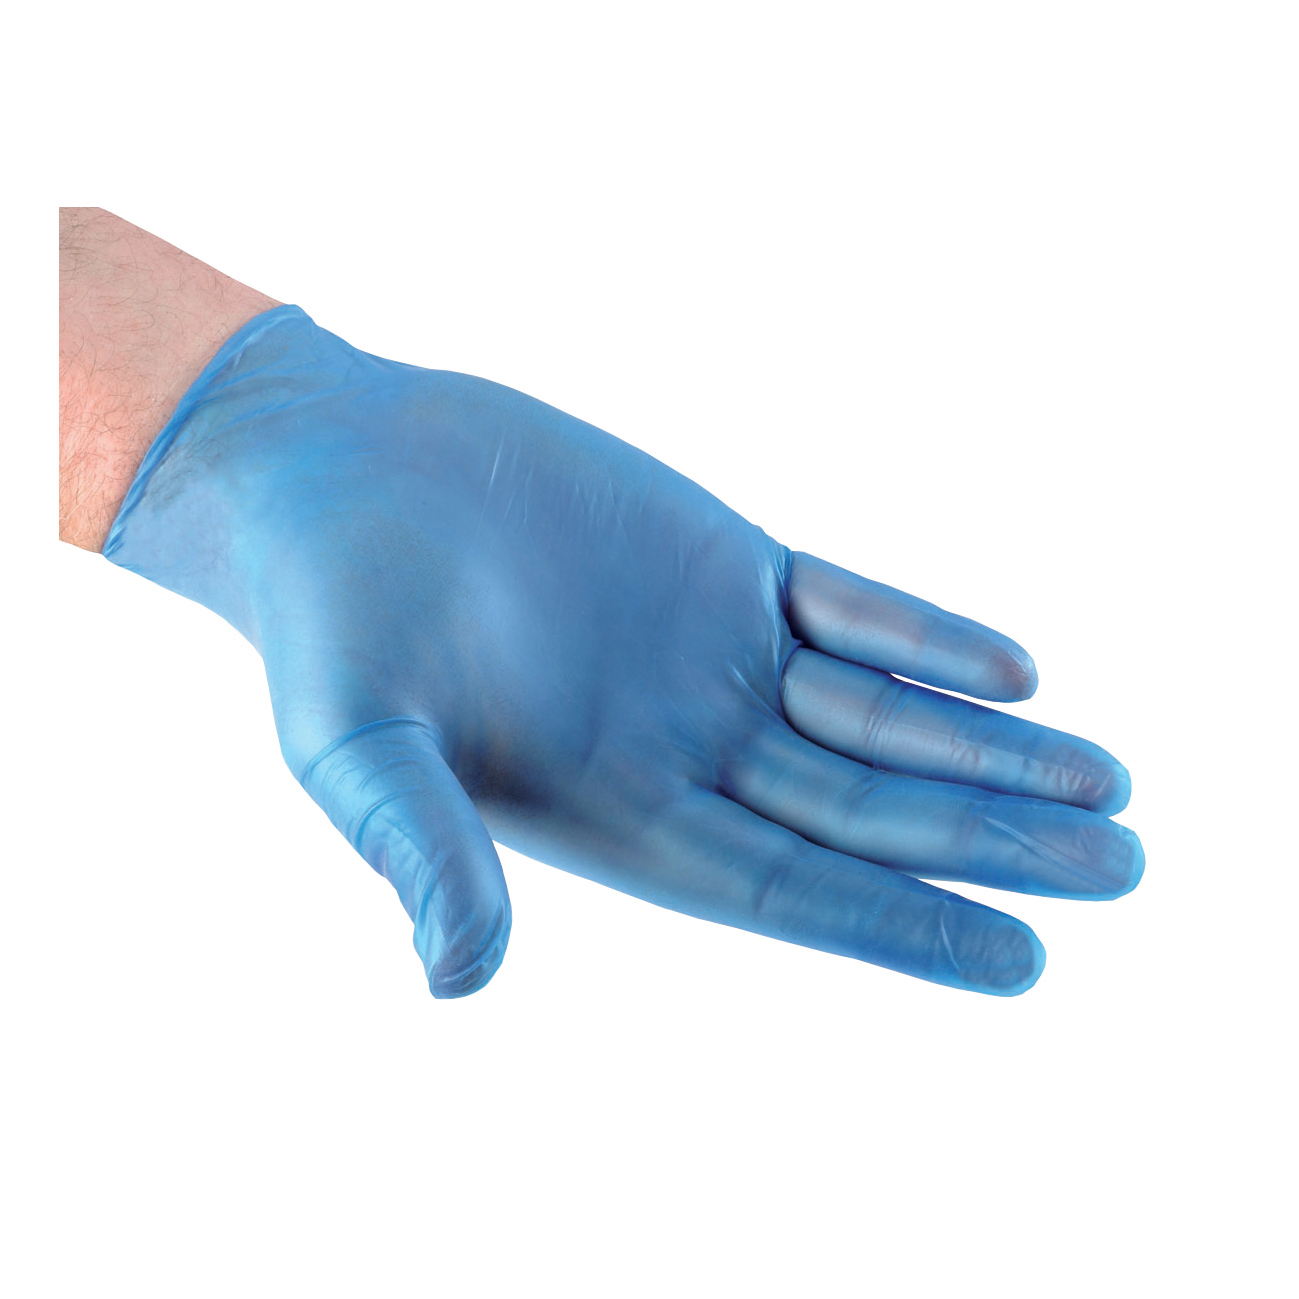 Disposable Gloves Vinyl Powder Free Large Blue Pack 100